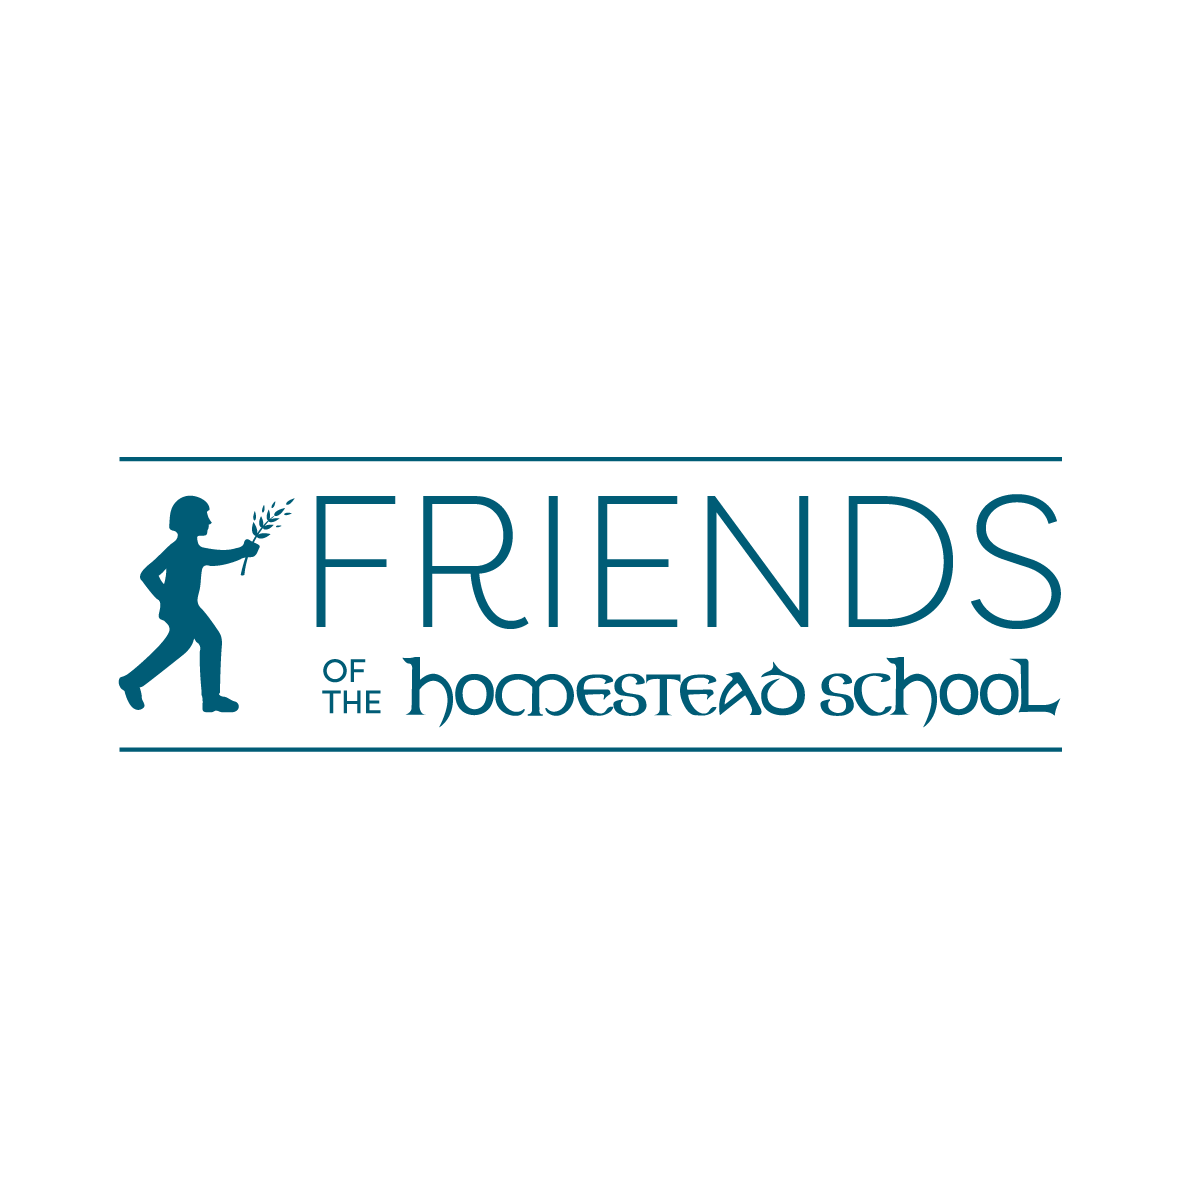 Friends of Homestead School | Glen Spey, NY   Friends of Homestead School is a not-for-profit entity of The Homestead School, in Glen Spey, NY. The Homestead School has a logo that is well-known in the area so it makes sense that elements of it be incorporated into this new entity.